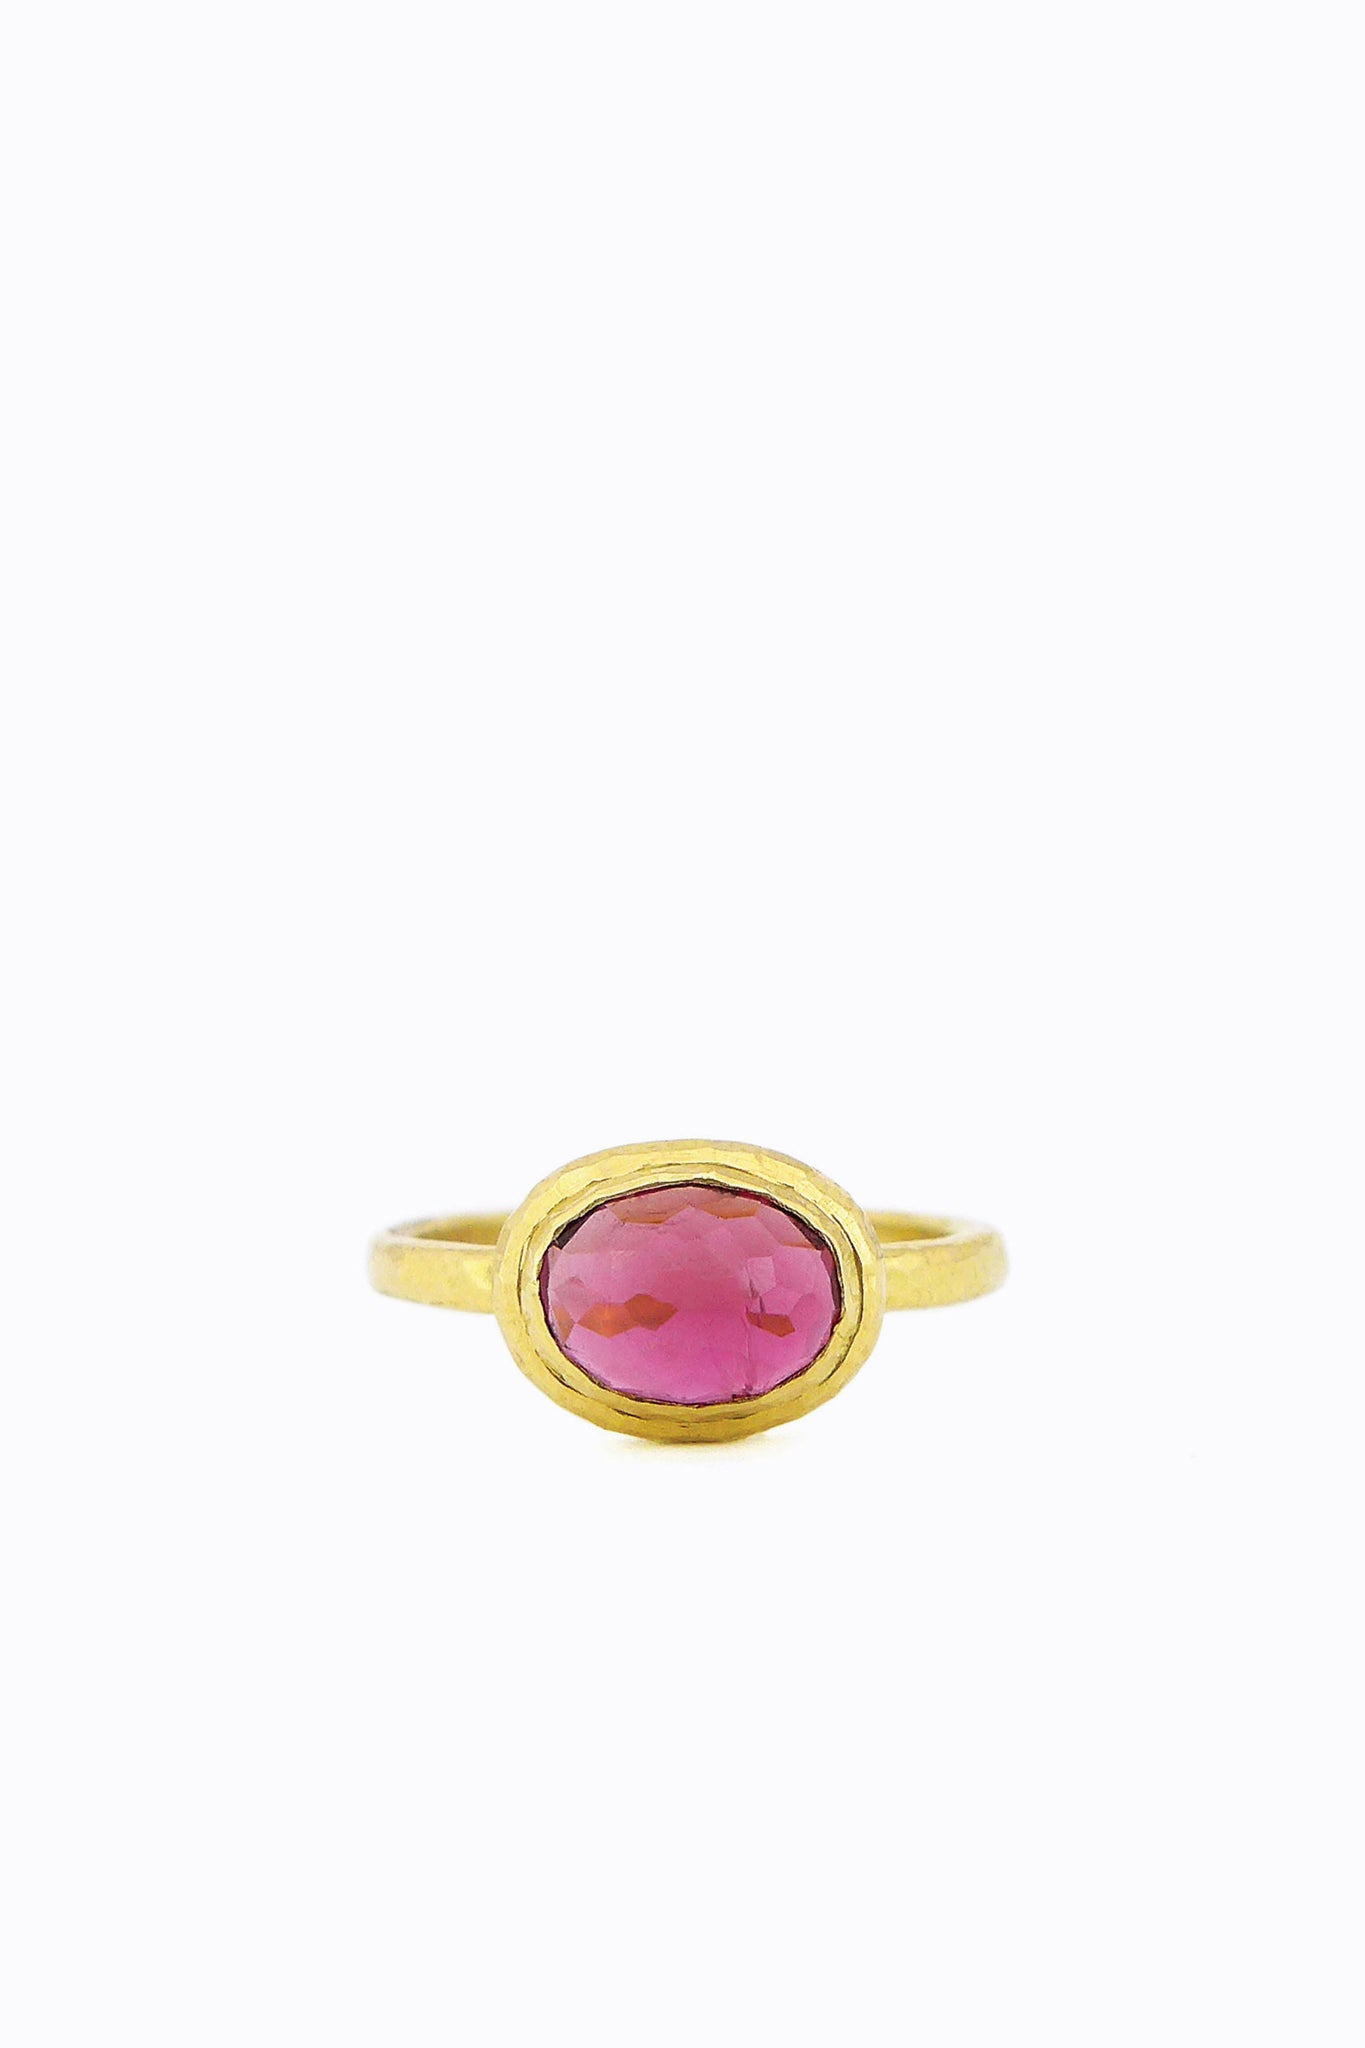 Large Pink Tourmaline Oval Gemma Ring